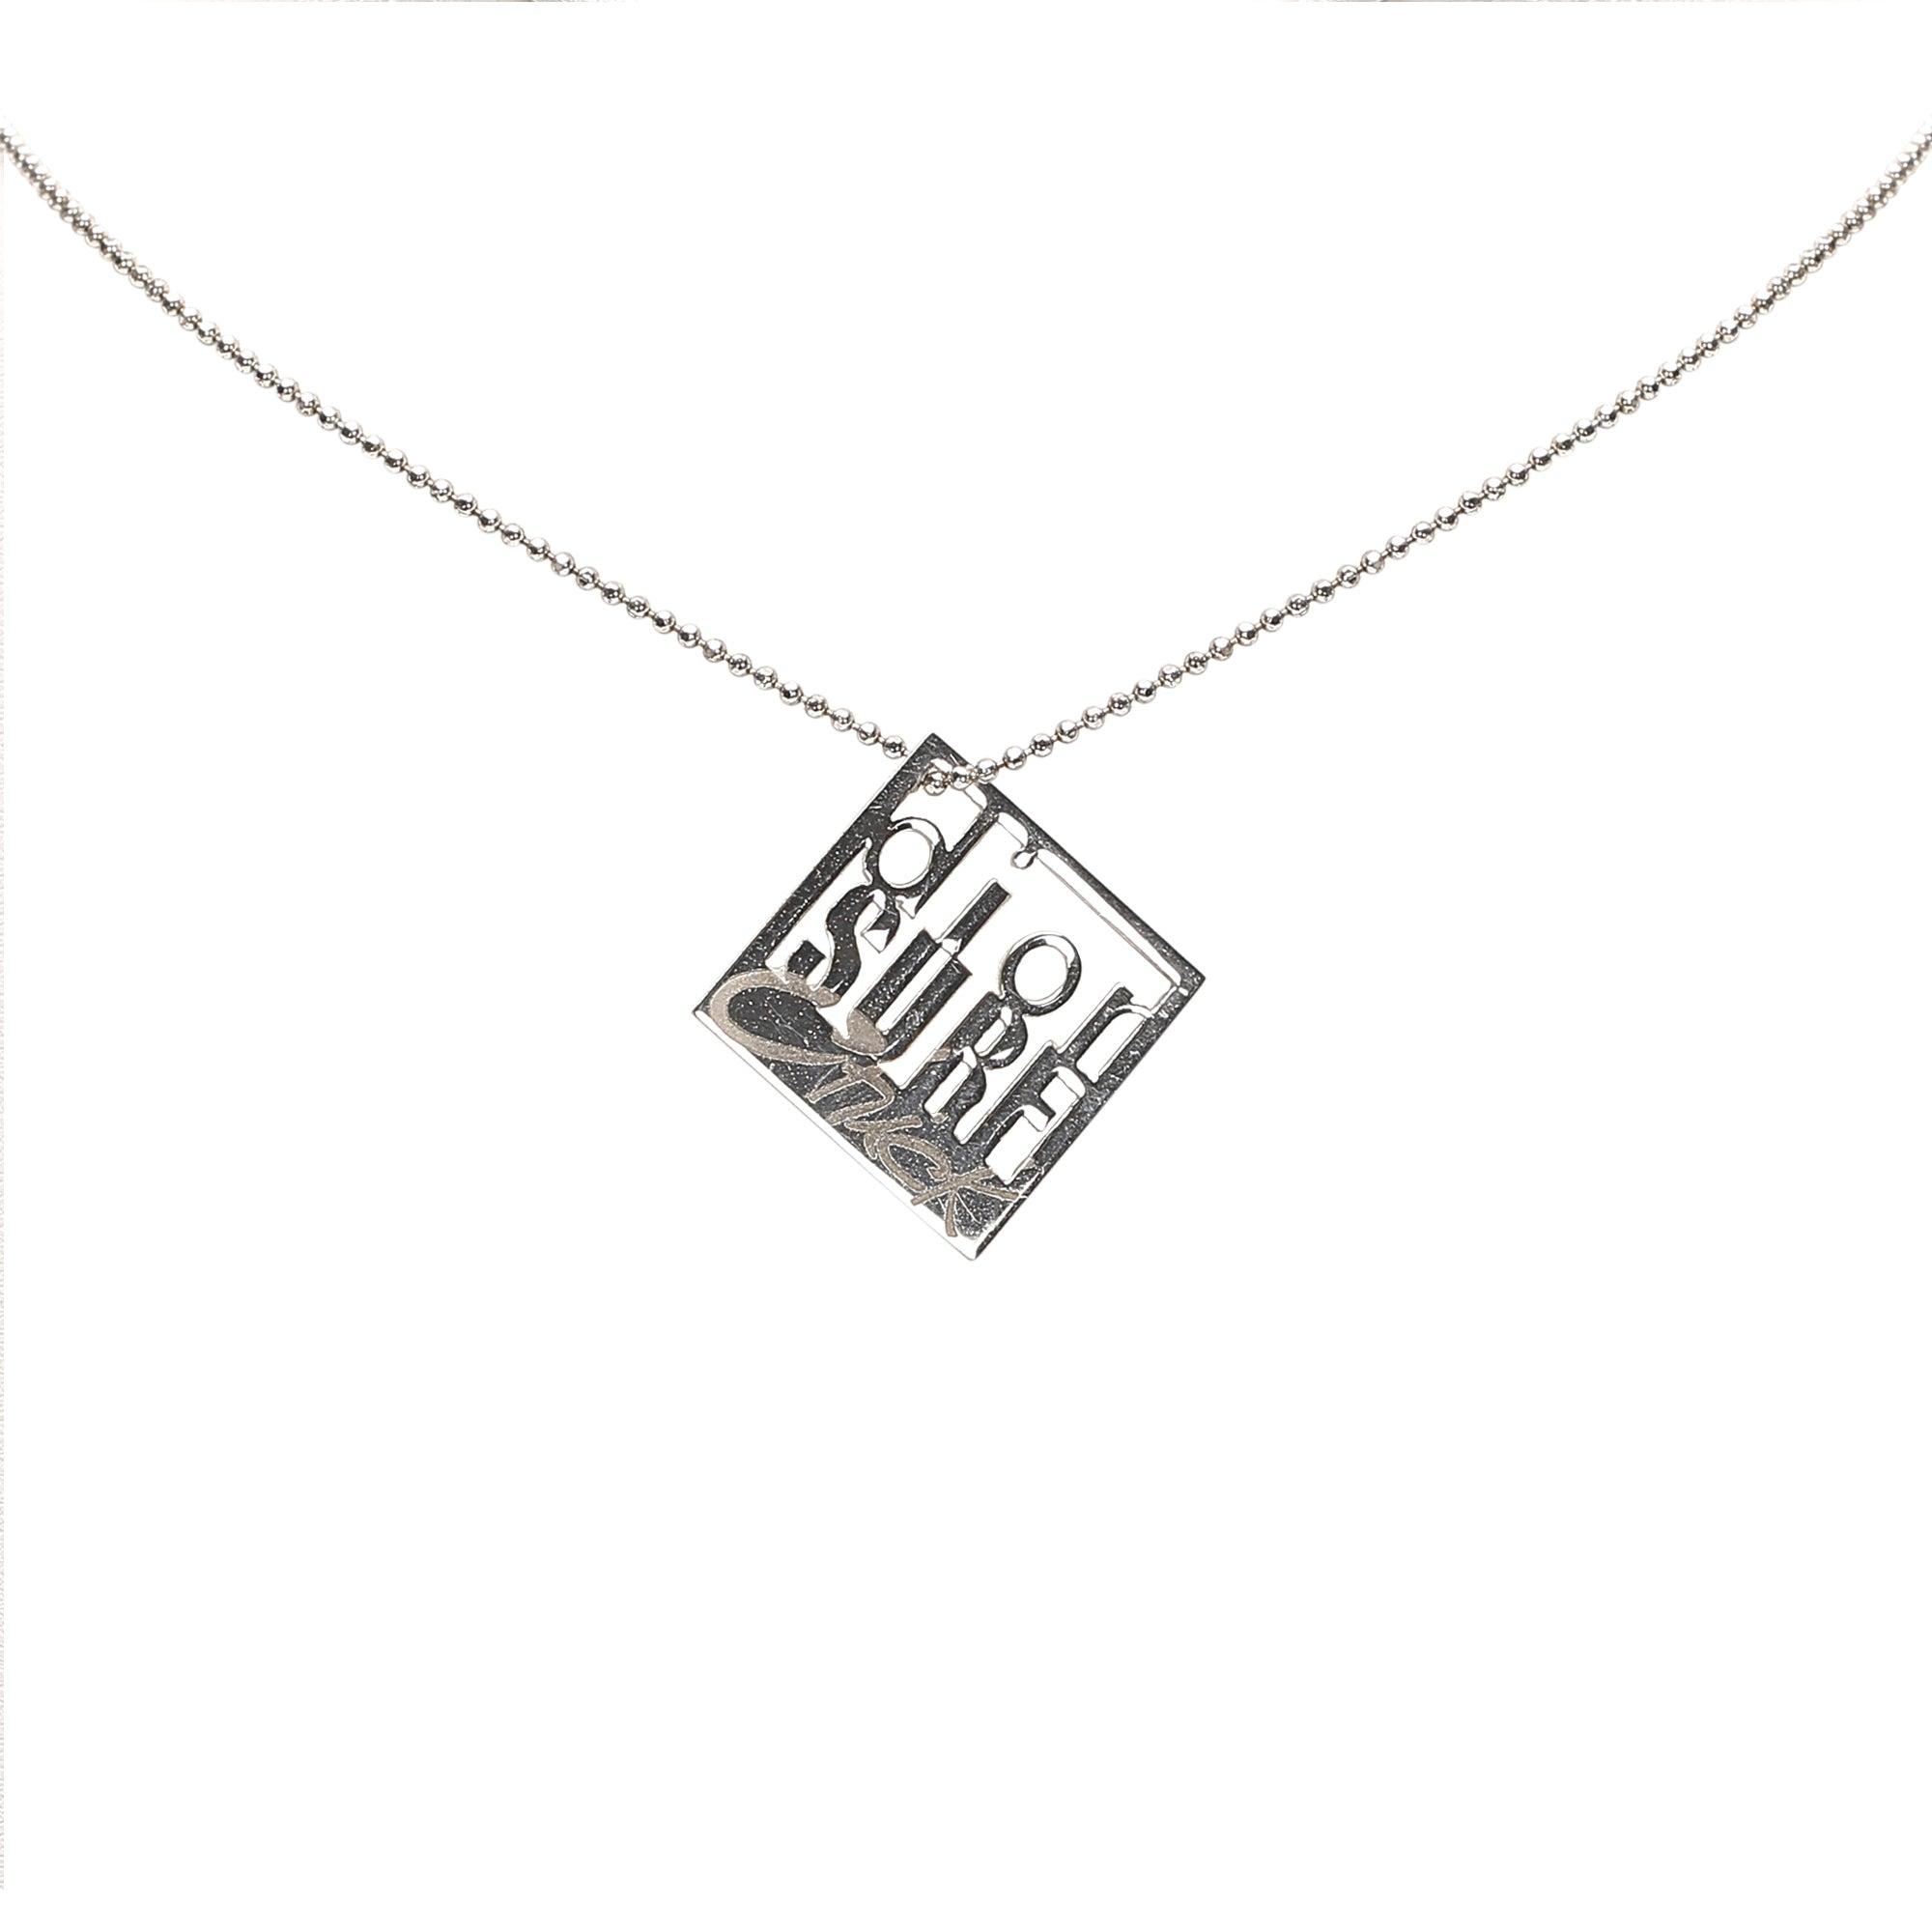 Dior Silver Dior Surf Pendant Necklace